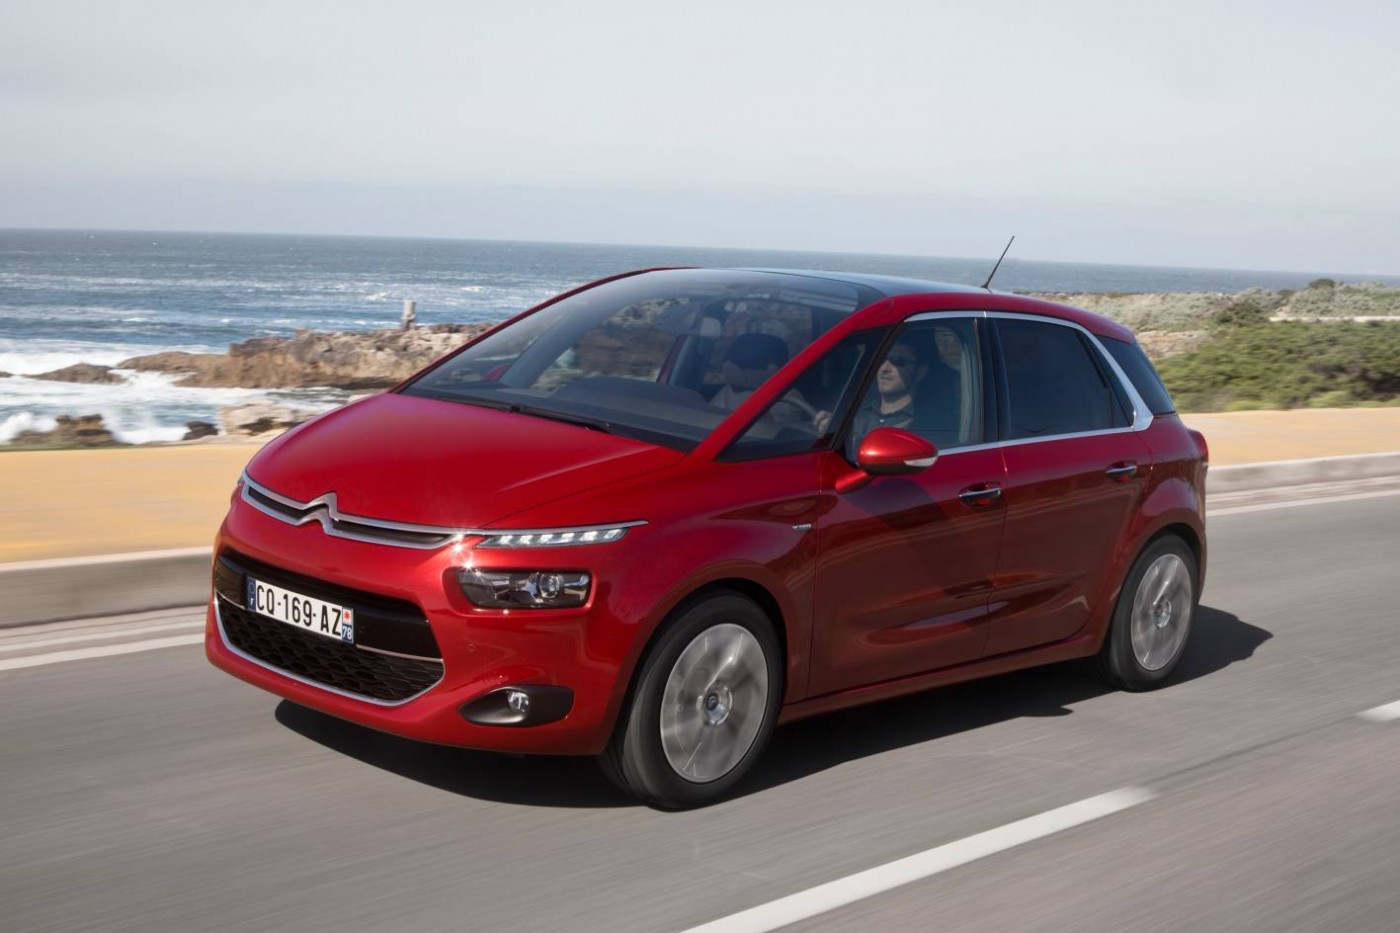 2015 citroen c4 picasso review practical motoring. Black Bedroom Furniture Sets. Home Design Ideas